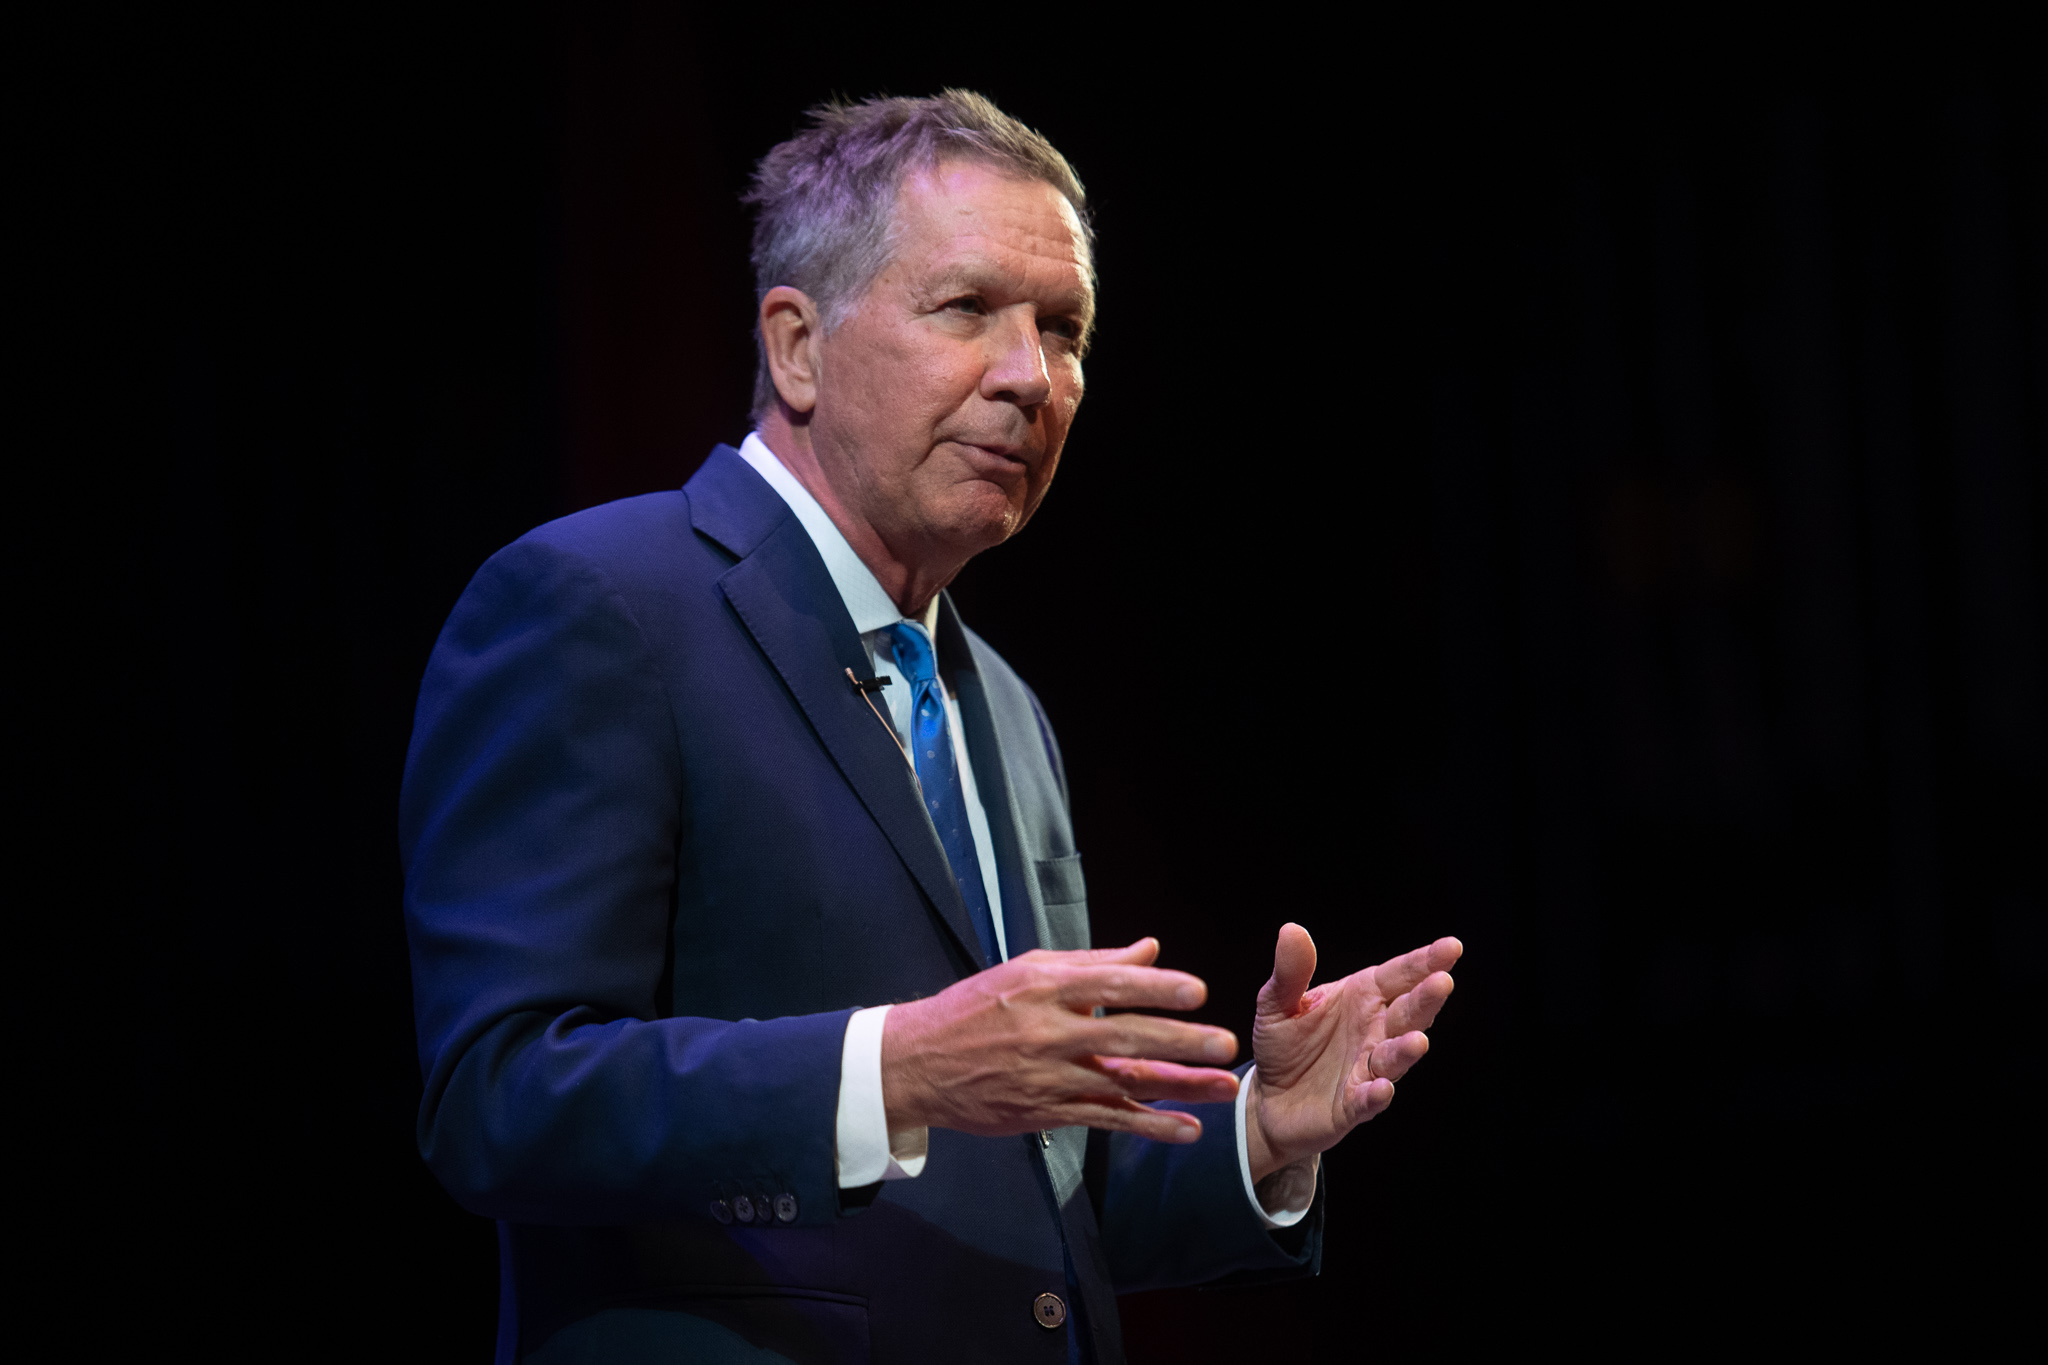 Former Ohio Governor John Kasich speaks at Molloy College in Rockville Centre, New York on April 10, 2019.